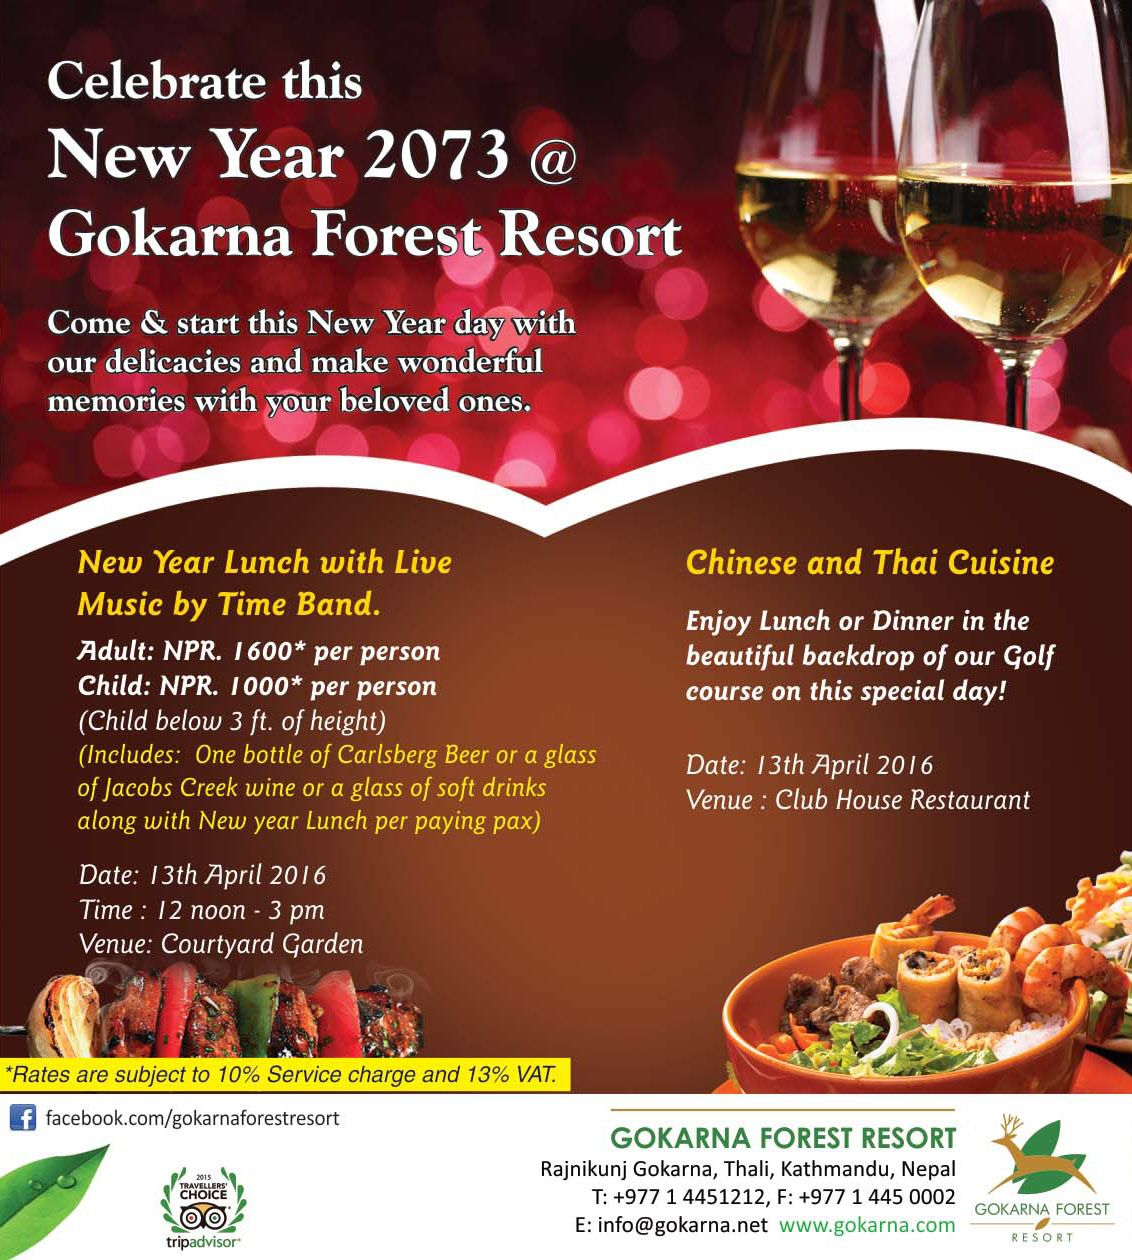 Let S Welcome New Year 2073 With Smiles On Our Faces Hopes In Our Heart For The Best Come Celebrate New Years Day Lun Forest Resort Welcome New Year Lunch